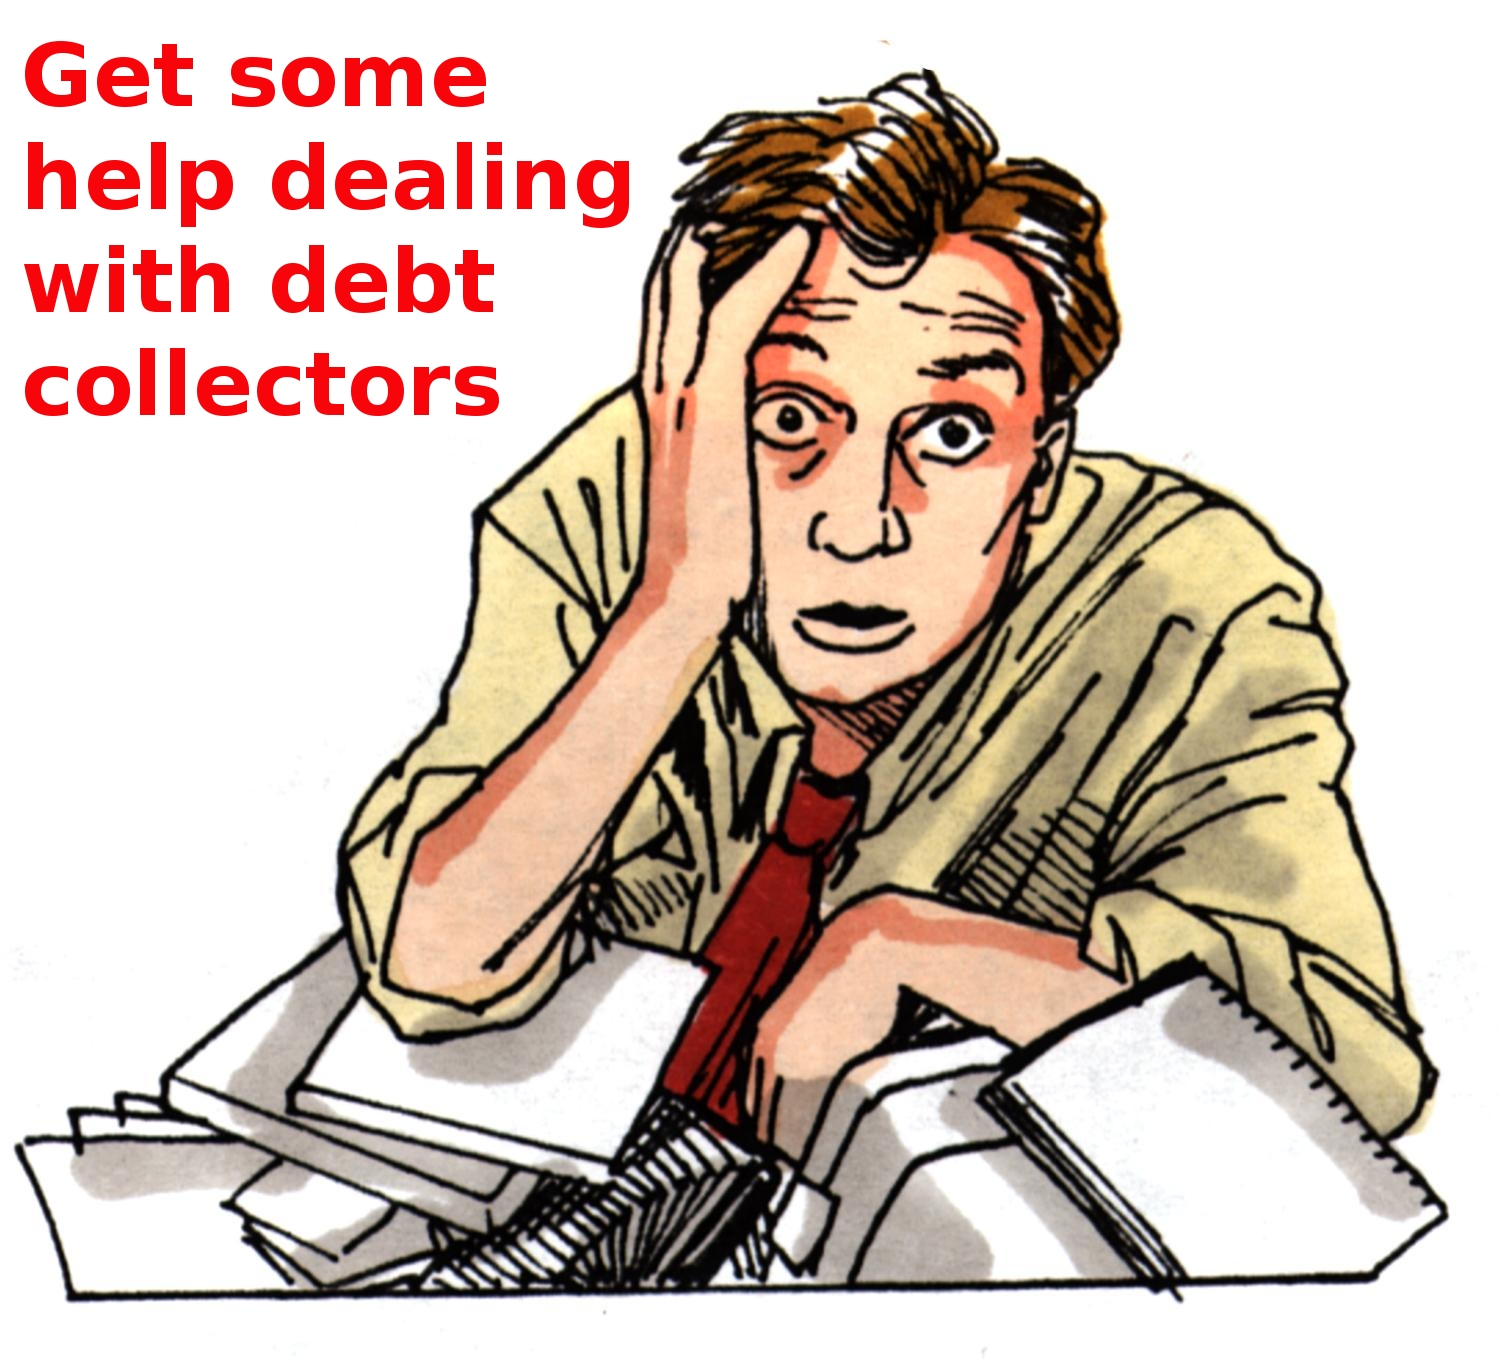 Get Some Help Dealing with Debt Collectors